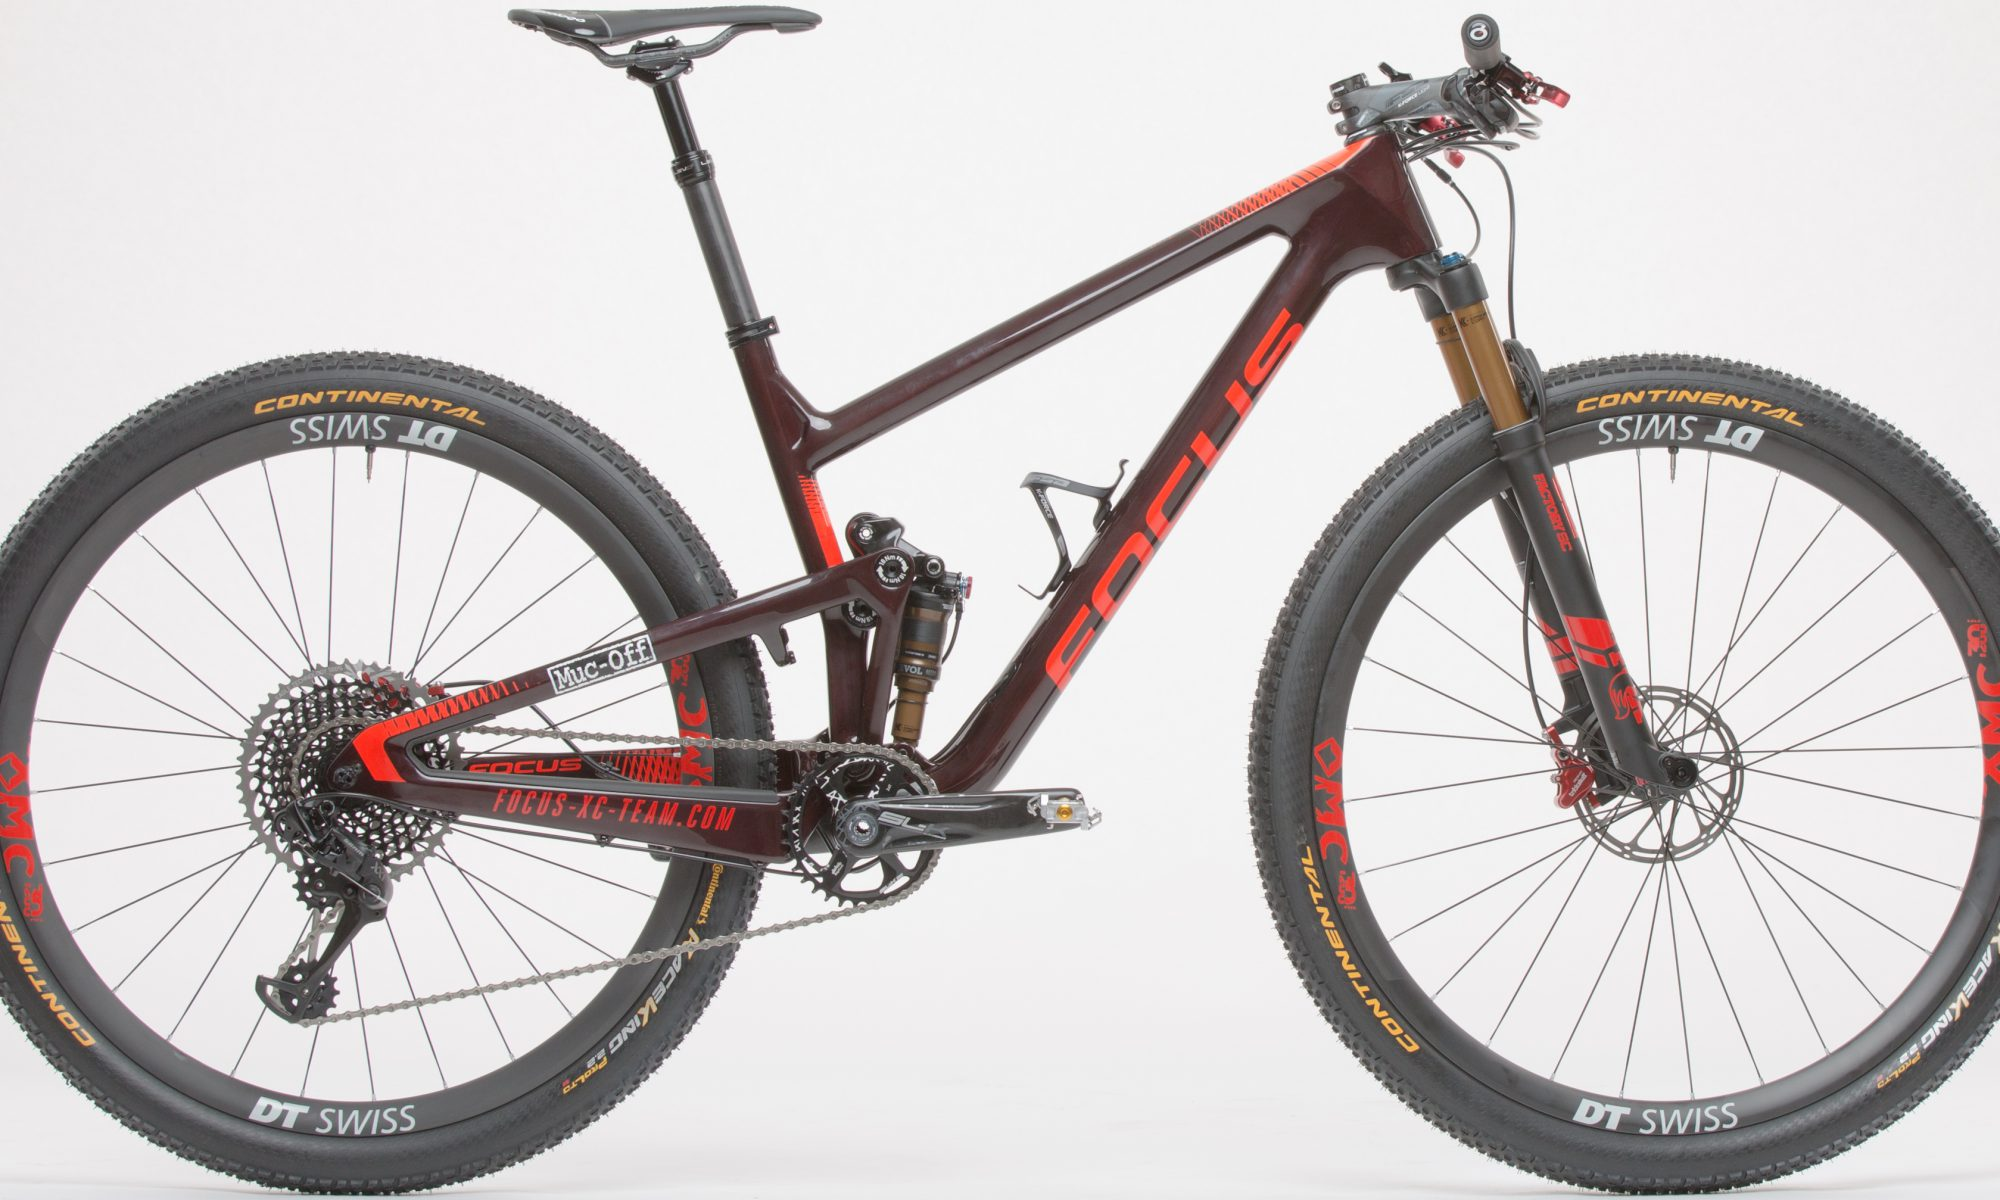 336635585ef FOCUS HAS PRESENTED THE NEW FOCUS XC TEAM REPLICA BIKE EQUIPPED WITH FSA  COMPONENTS